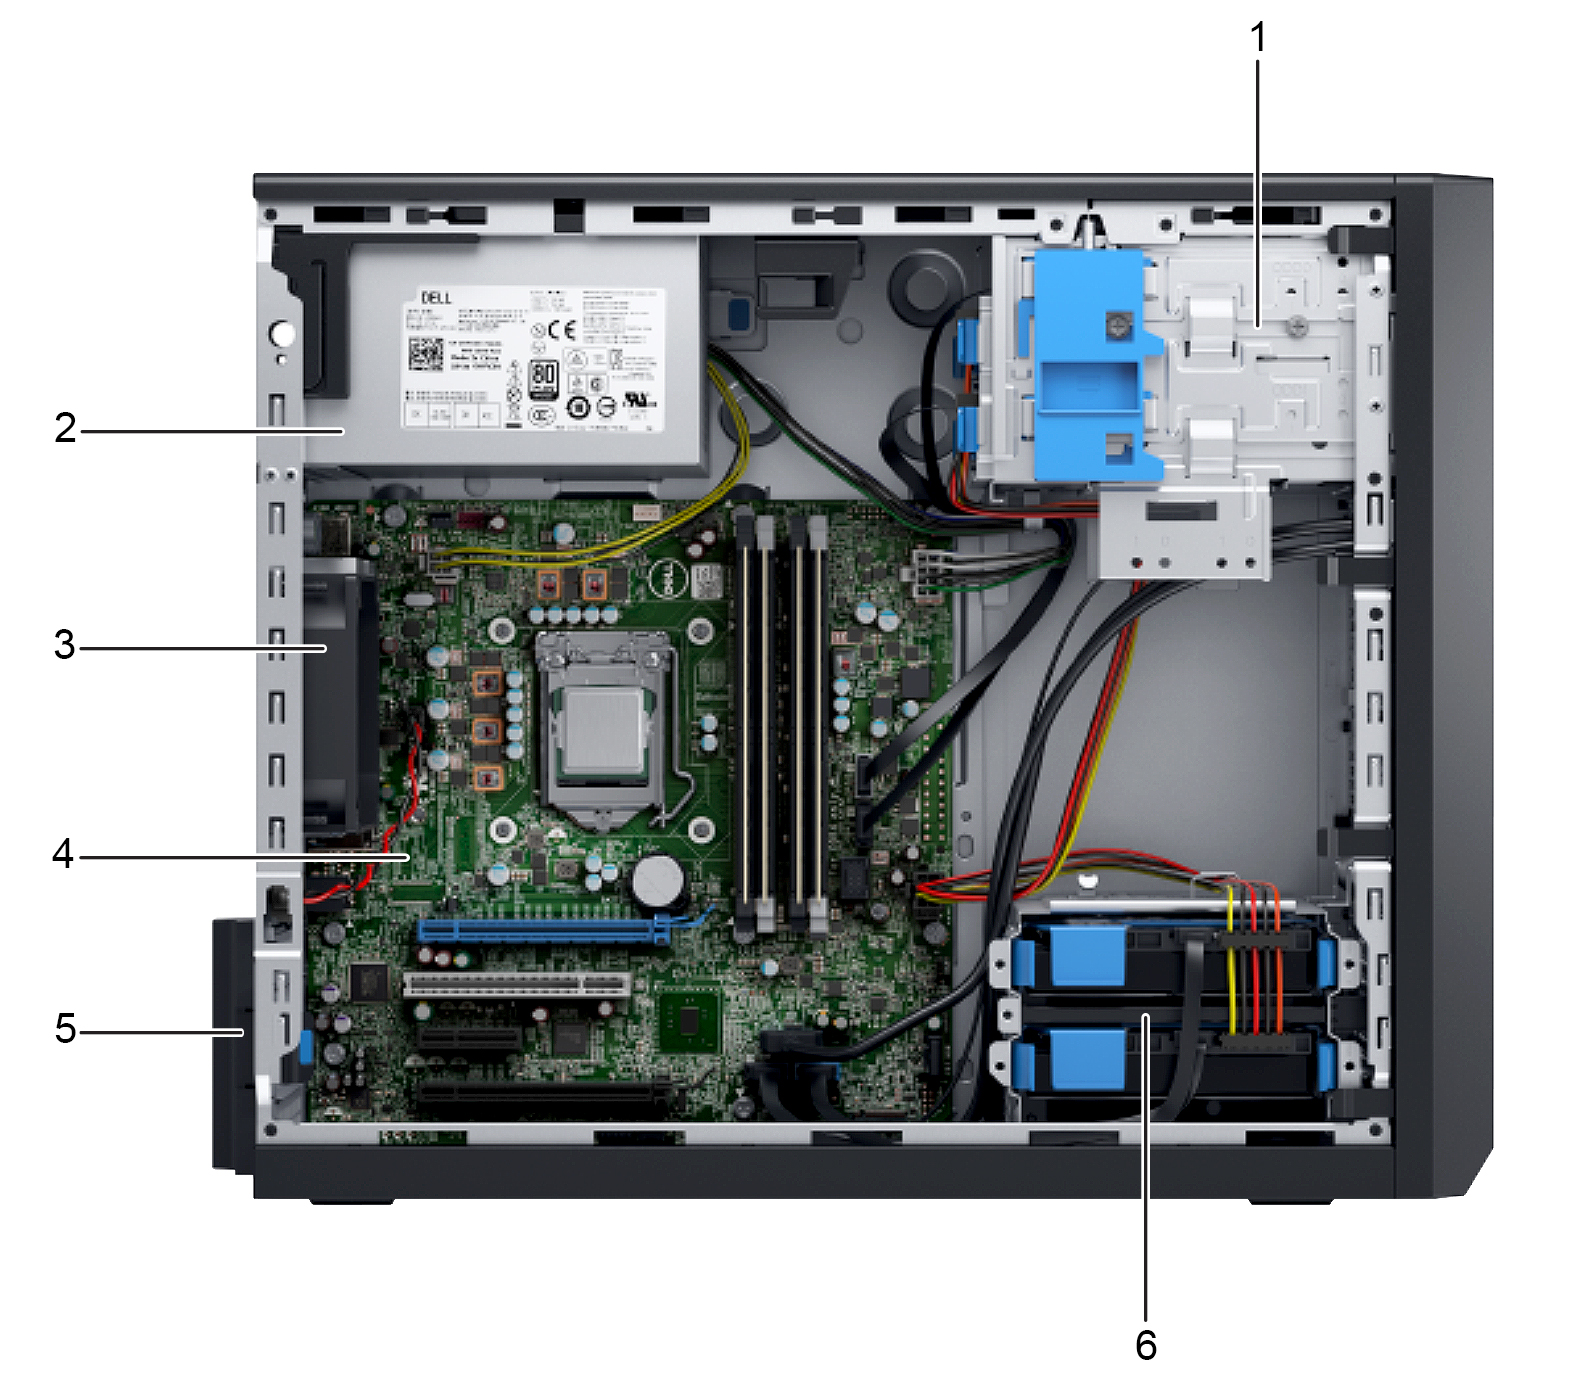 Dell PowerEdge T30 Owner's Manual